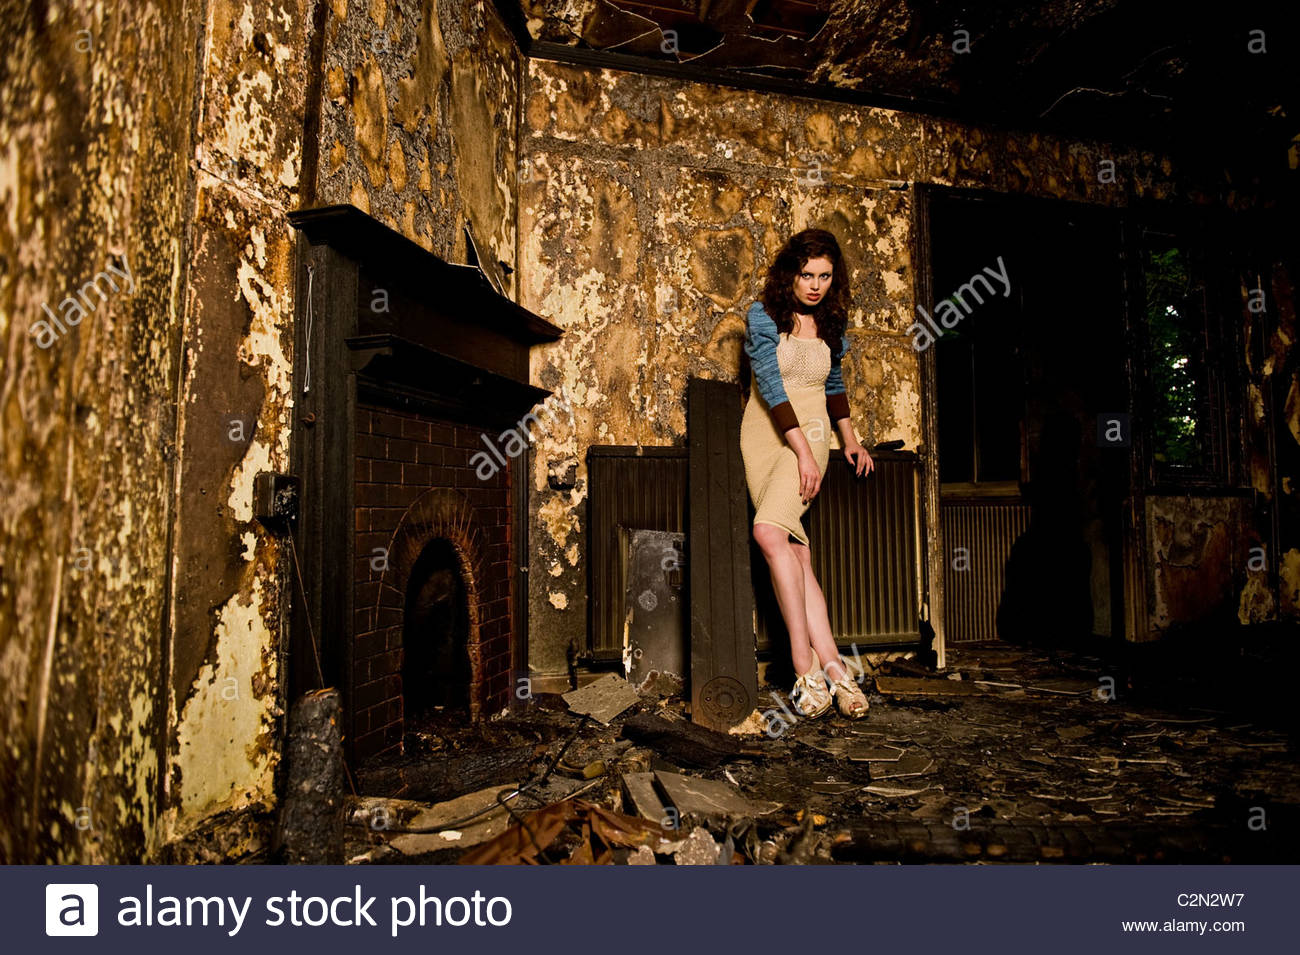 Caucasian Fashion Model in Burnt Building - Stock Image